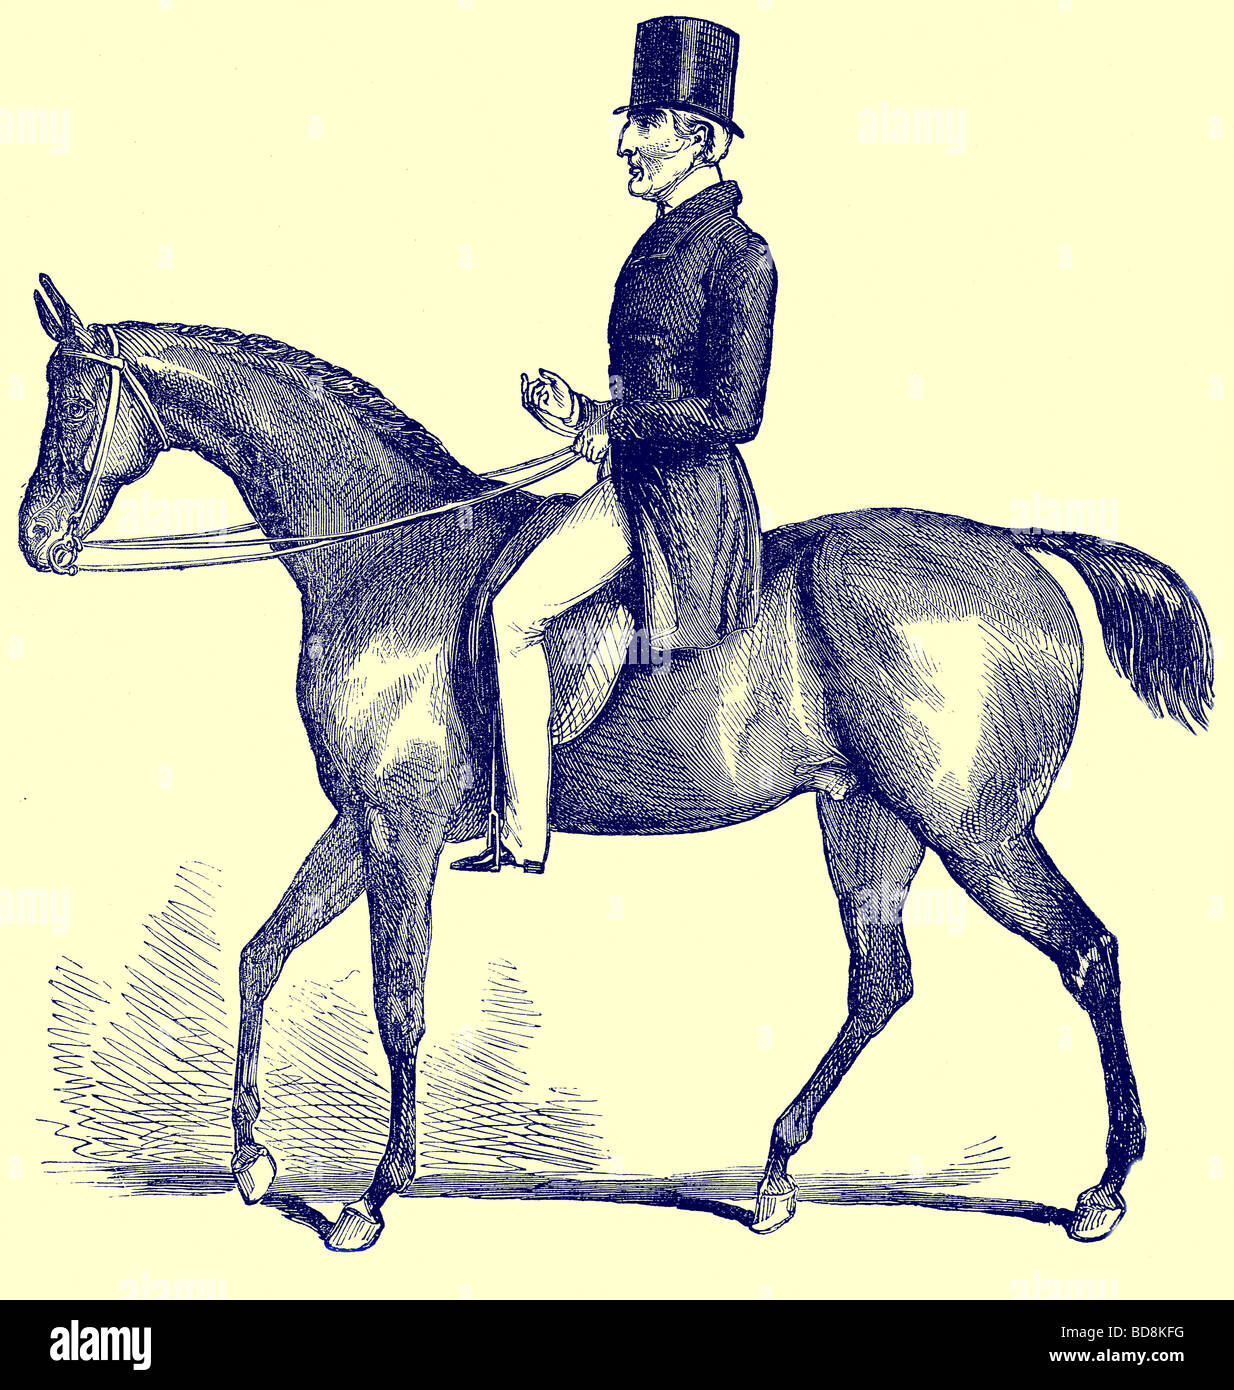 The Duke of Wellington in 1842 Illustration from Old and New London by Edward Walford Cassell c 1880 - Stock Image